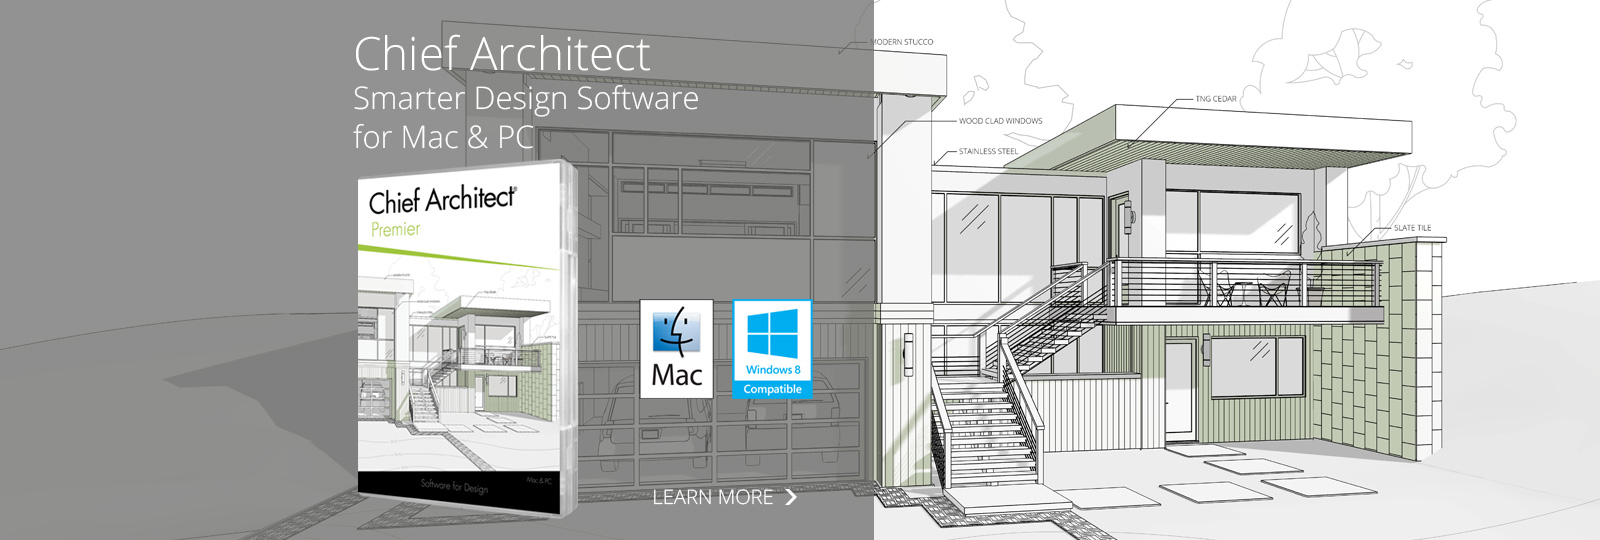 Architectural Home Design Software By Chief Architect